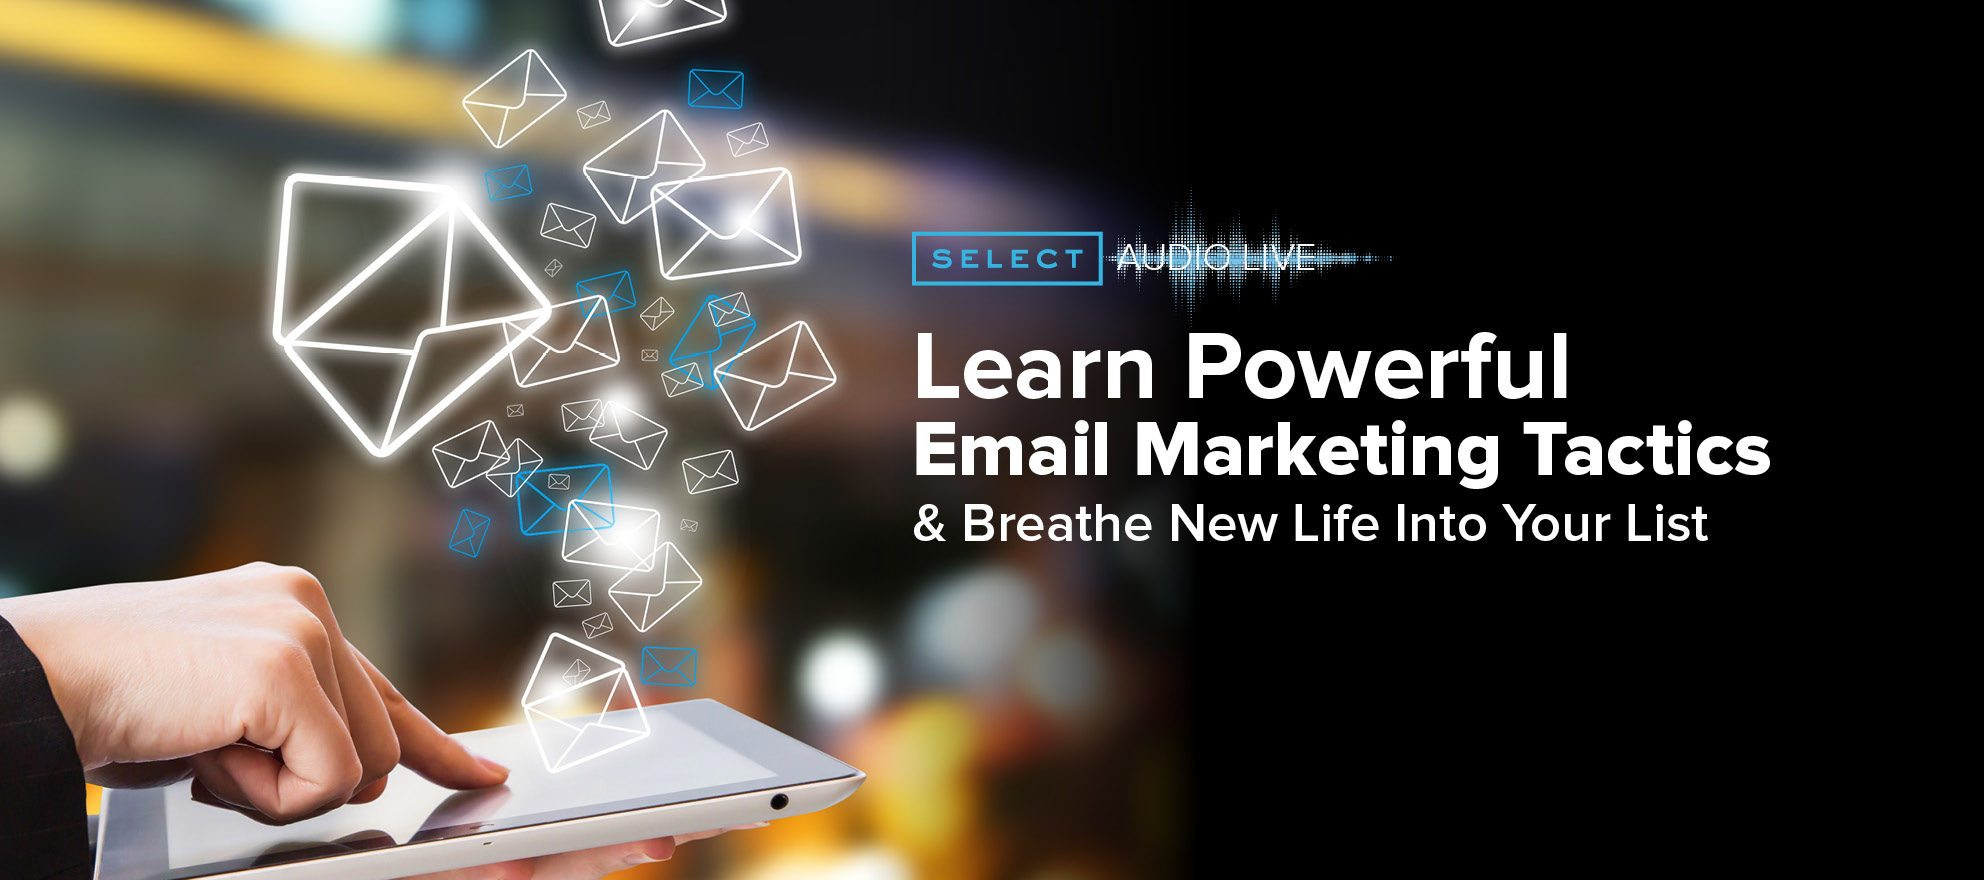 Look inside the anatomy of an effective marketing email